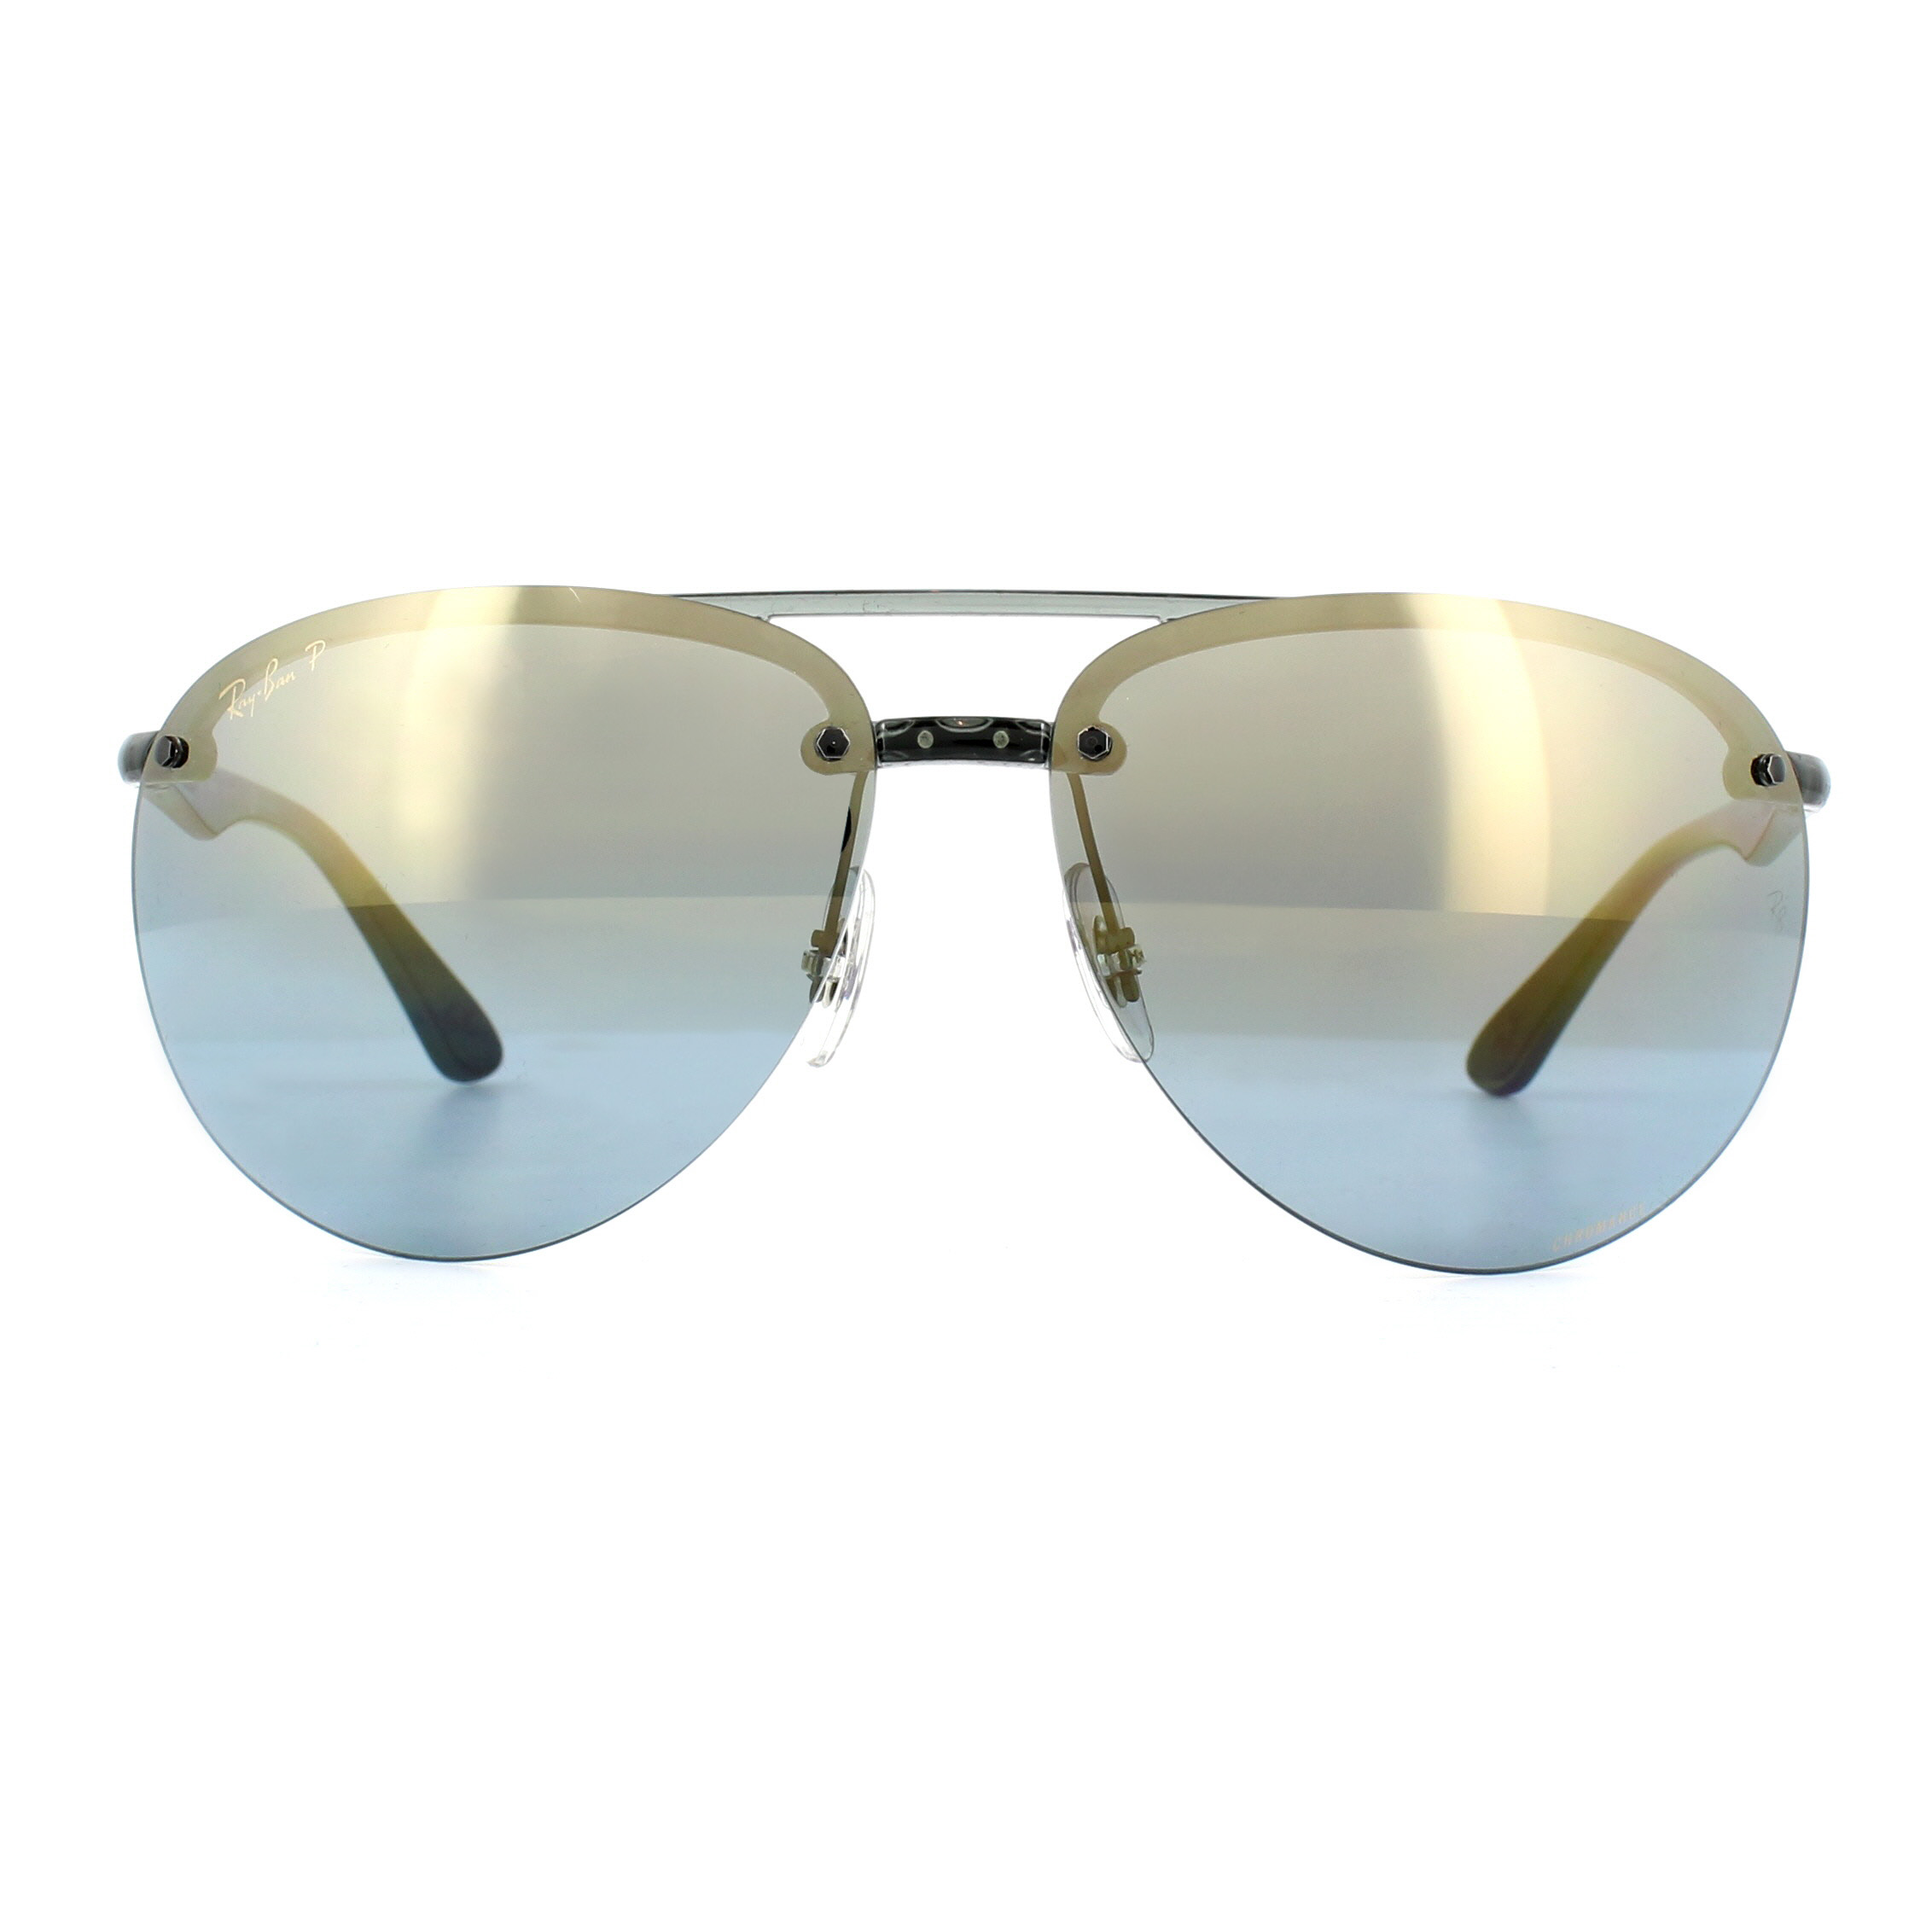 81259db00d Sentinel Ray-Ban Sunglasses RB4293CH 876 J0 Grey Blue Gradient Mirror  Polarized Chromance